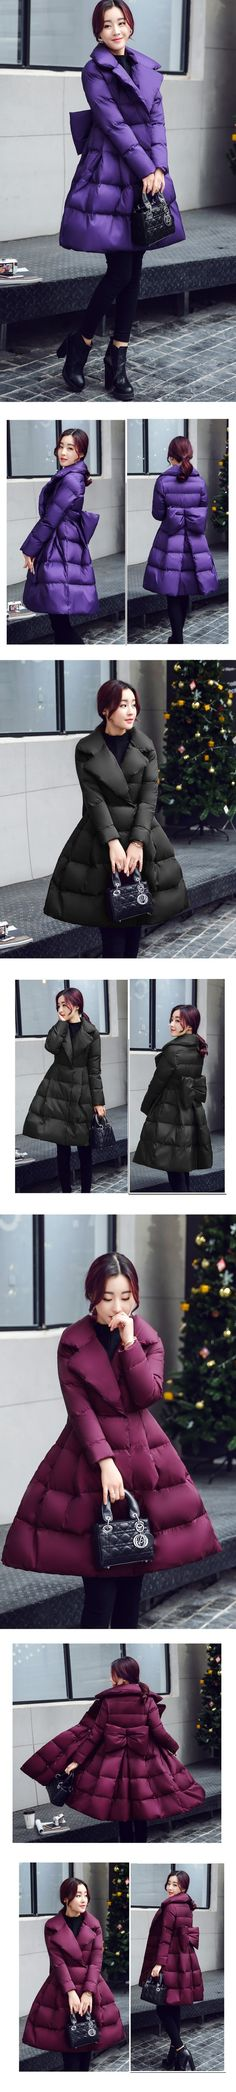 A-Line Long Coat with a Bow in the back  (APOENGE)